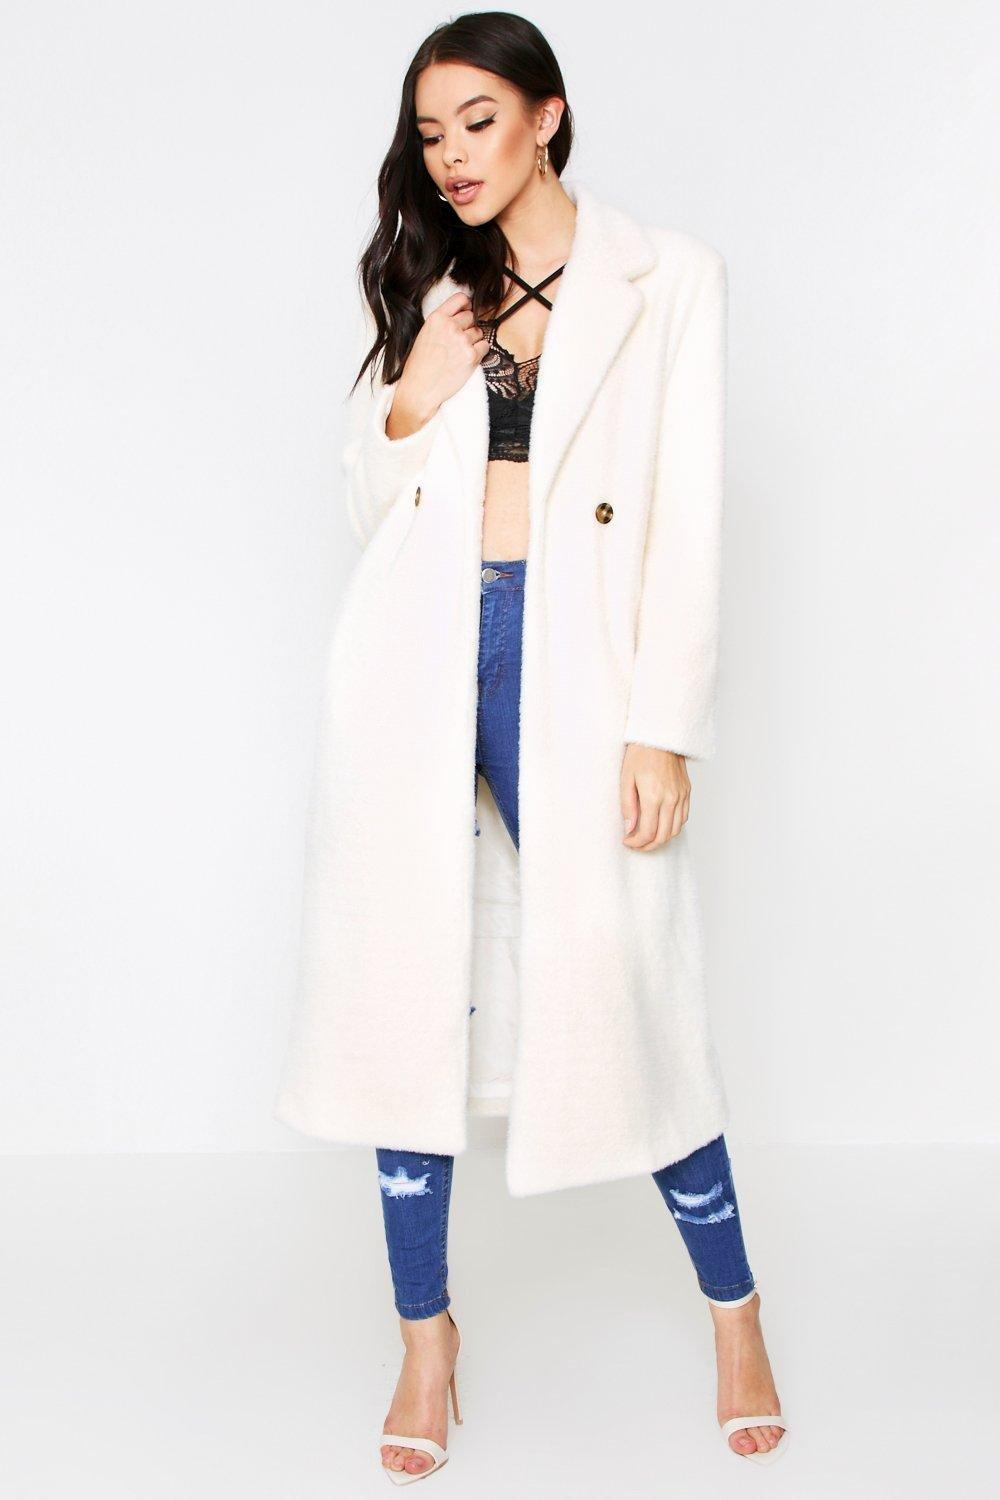 Image result for Faux Fur Oversized Long Coat https://www.boohoo.com/faux-fur-oversized-long-coat/FZZ66819.html Product code: FZZ66819